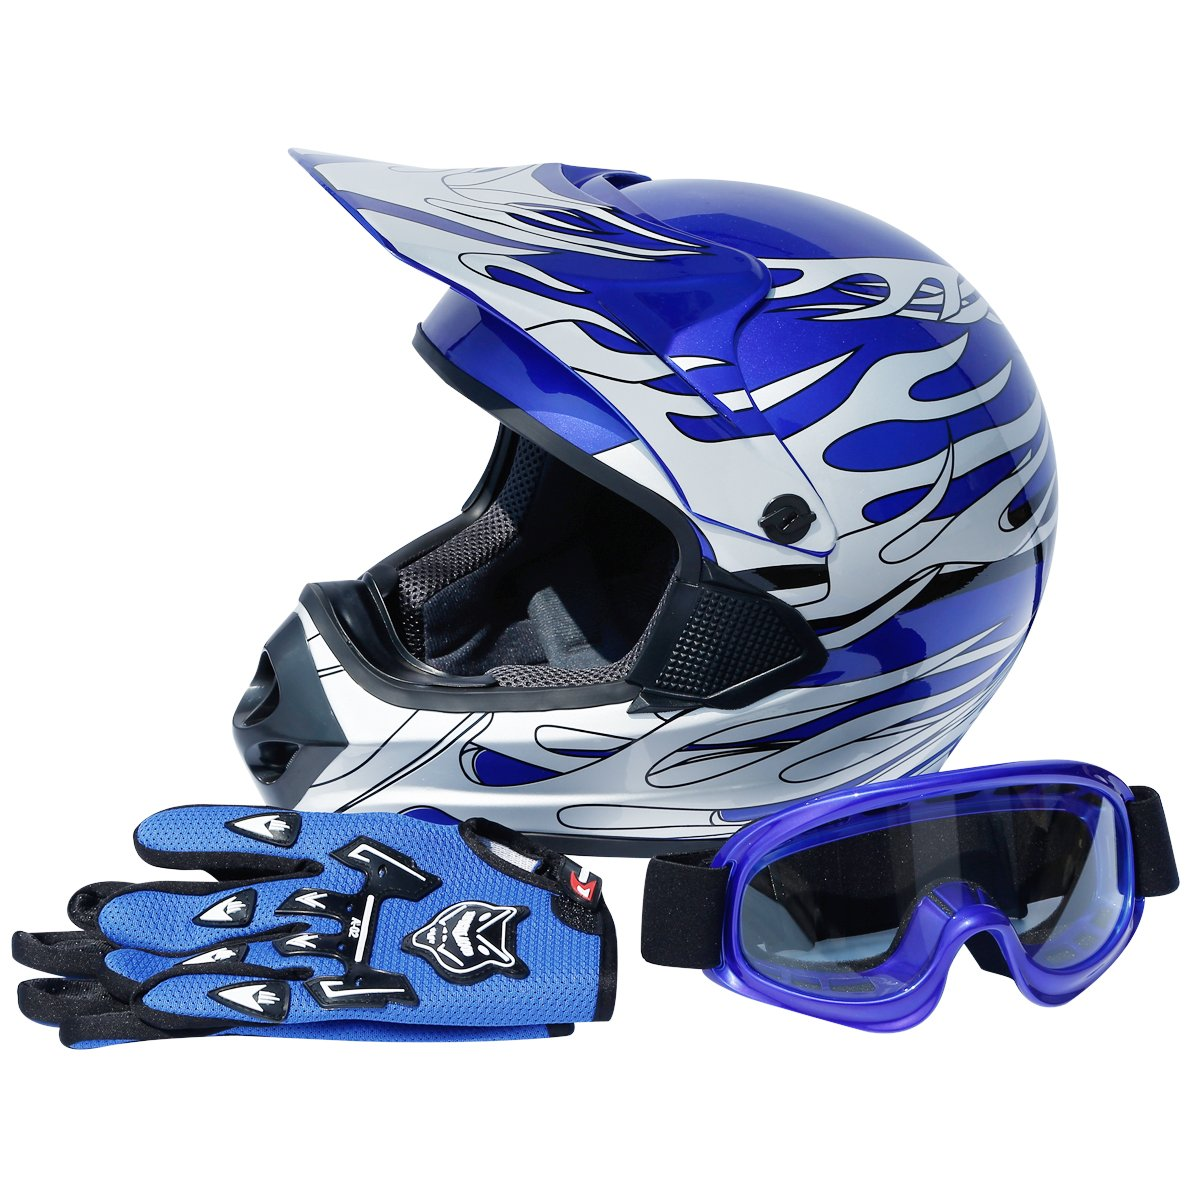 TCMT DOT Certified Youth Blue Flame Dirt Bike ATV MX Motocross Offroad Street Motorcycle Helmet Goggles Gloves XL